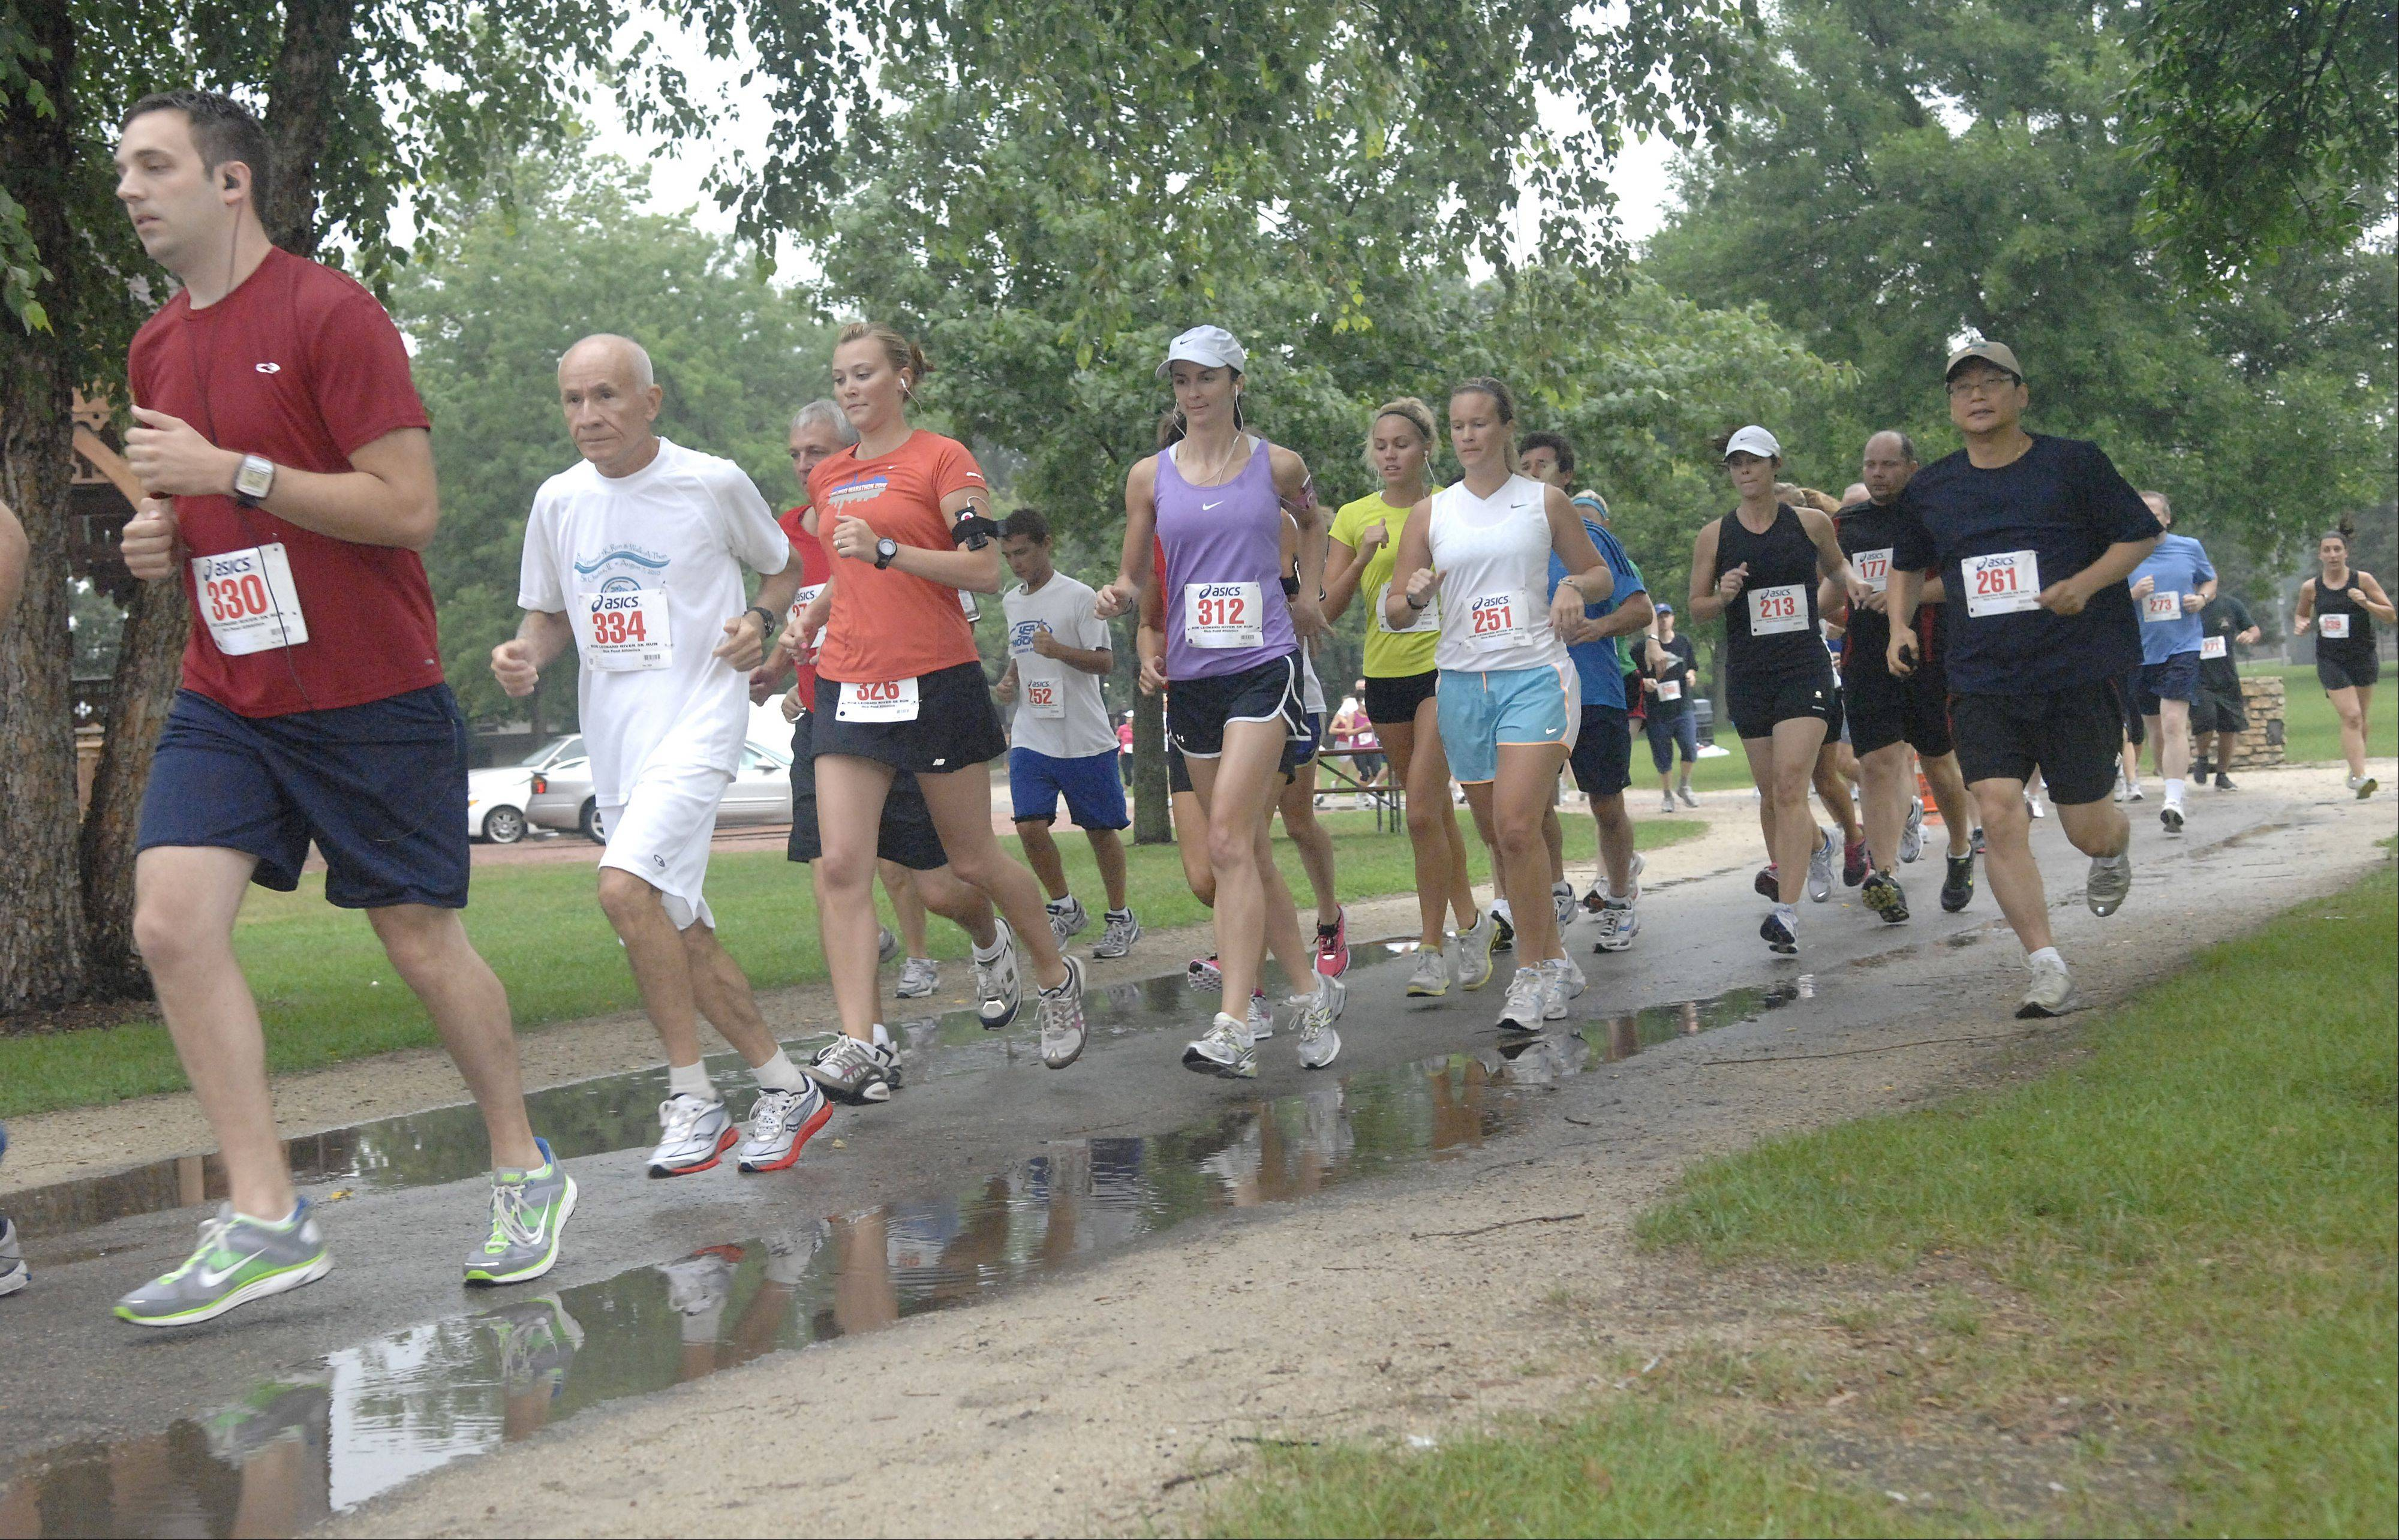 Runners take off at last year's Bob Leonard 5K Run and Walk-A-Thon at Pottawatomie Park in St. Charles. This year's event is Saturday, Aug. 11, and benefits the River Corridor Foundation. Leonard was a founder of the group and an advocate for riverfront beautification.